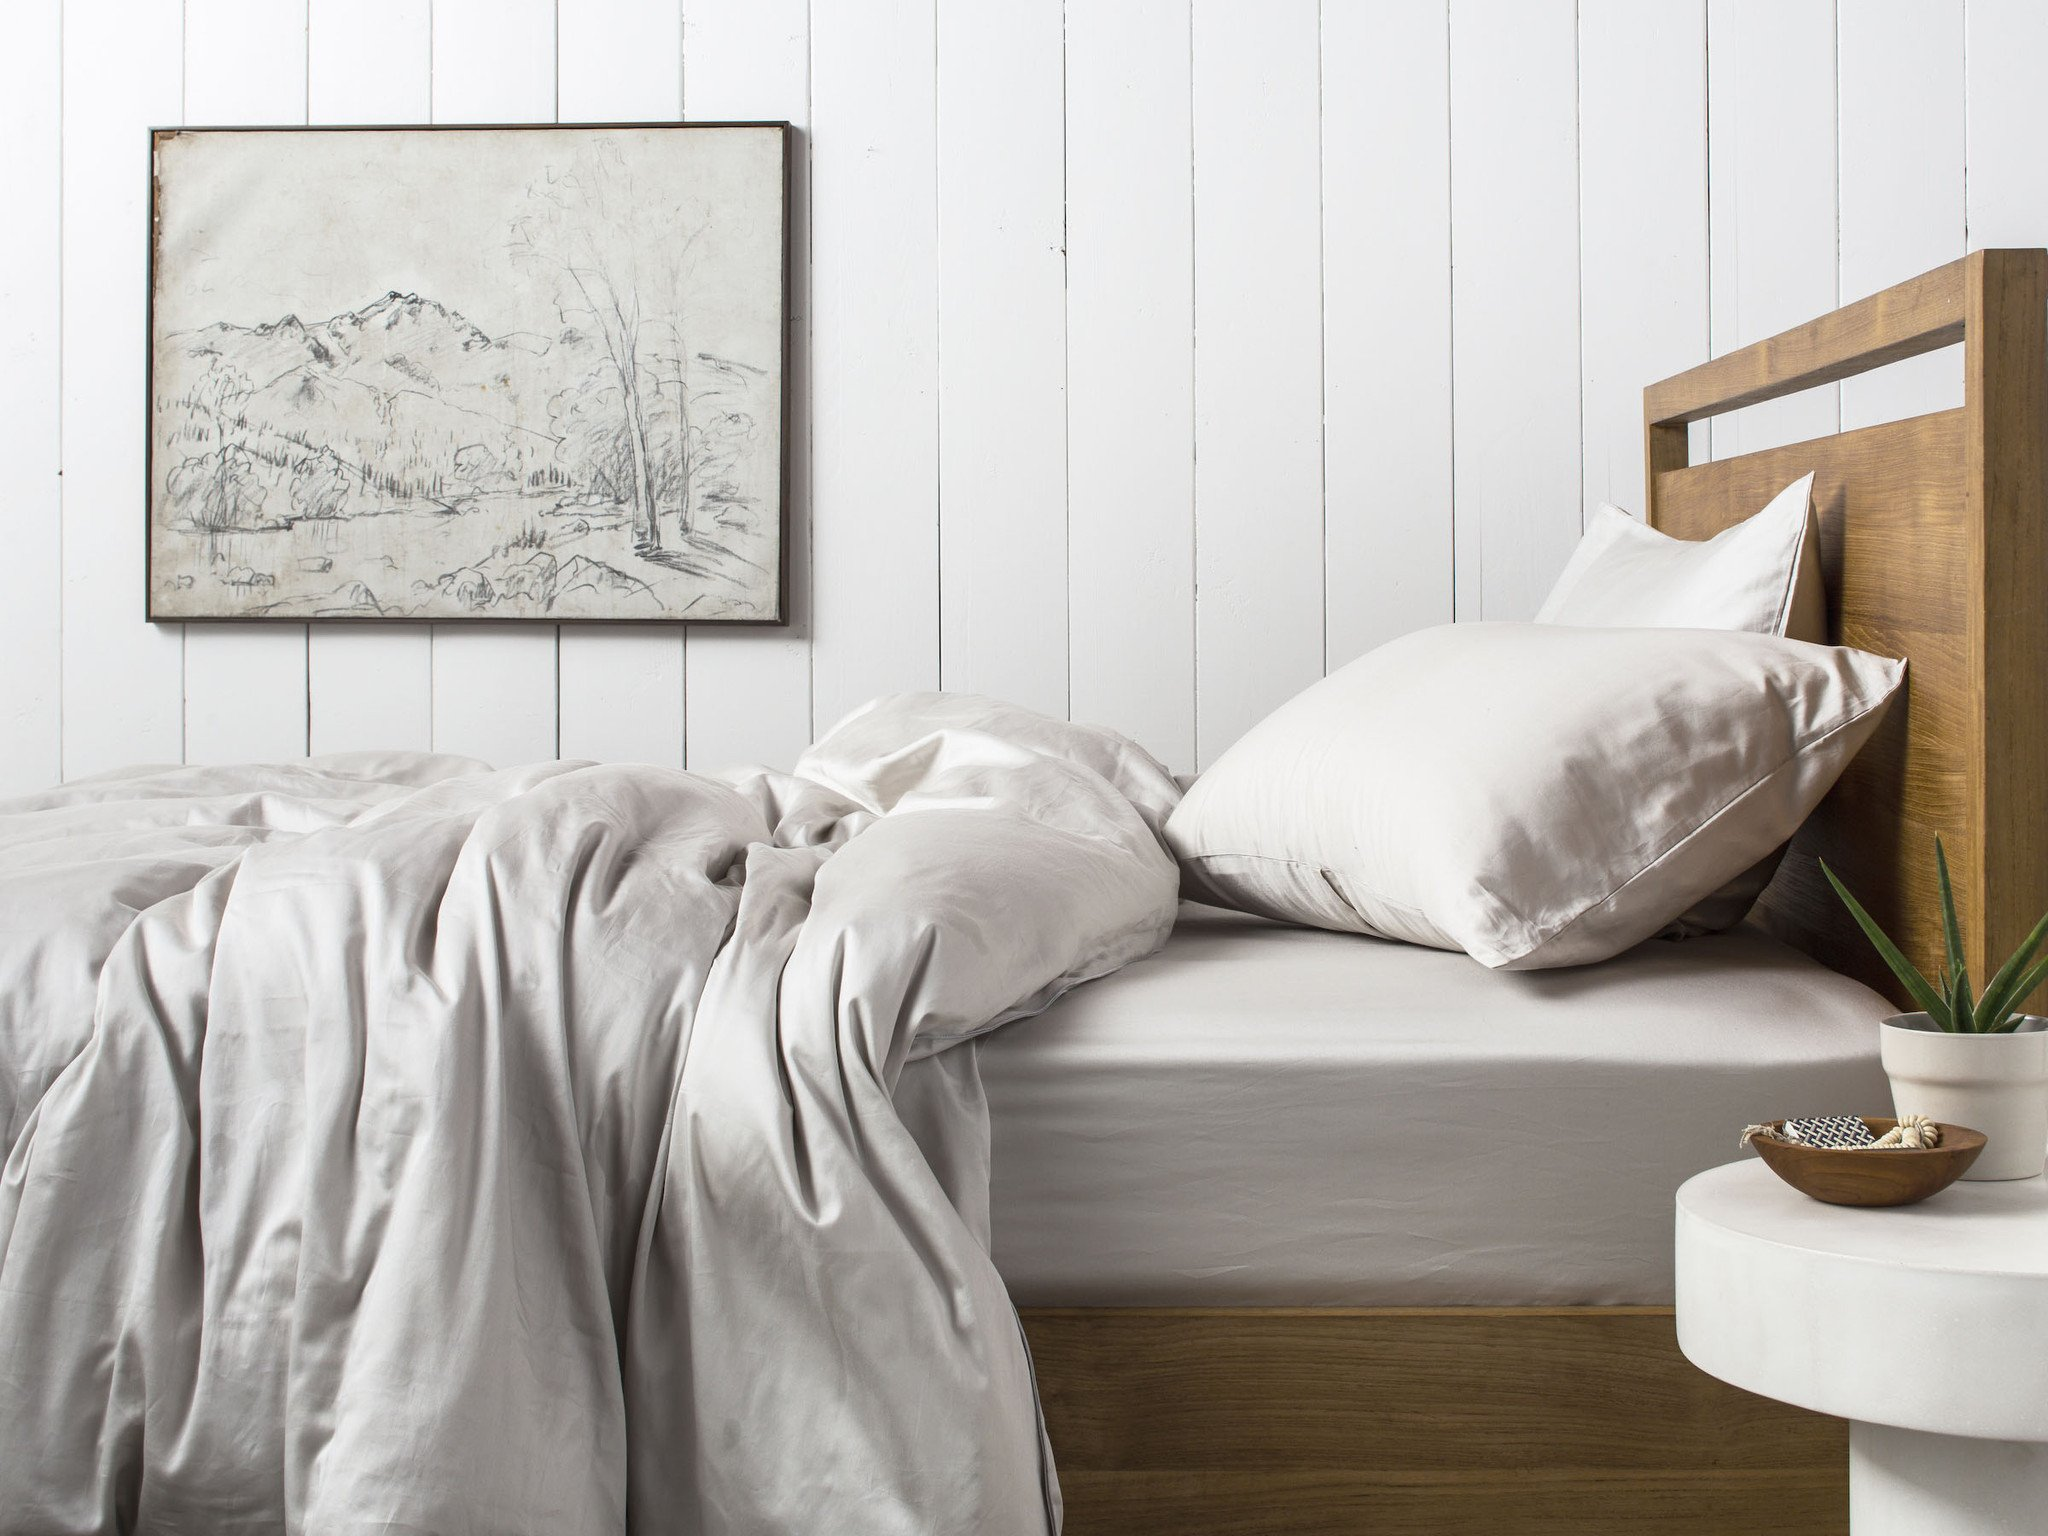 Parachute Home Bedding - Gift Guide